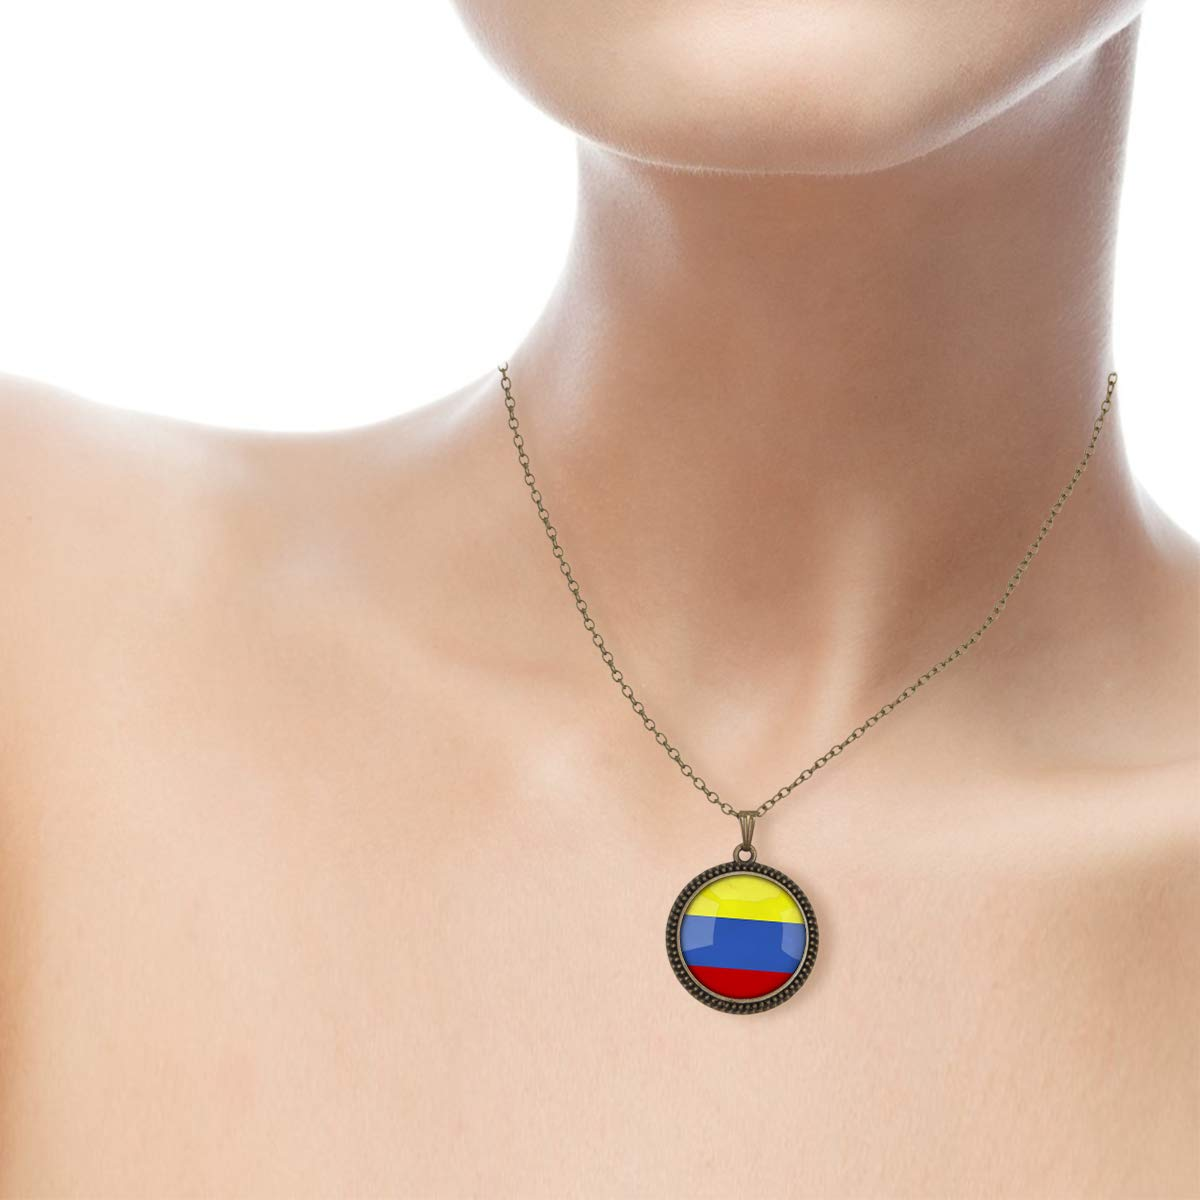 Family Decor The Republic of Colombia National Flag Pendant Necklace Cabochon Glass Vintage Bronze Chain Necklace Jewelry Handmade